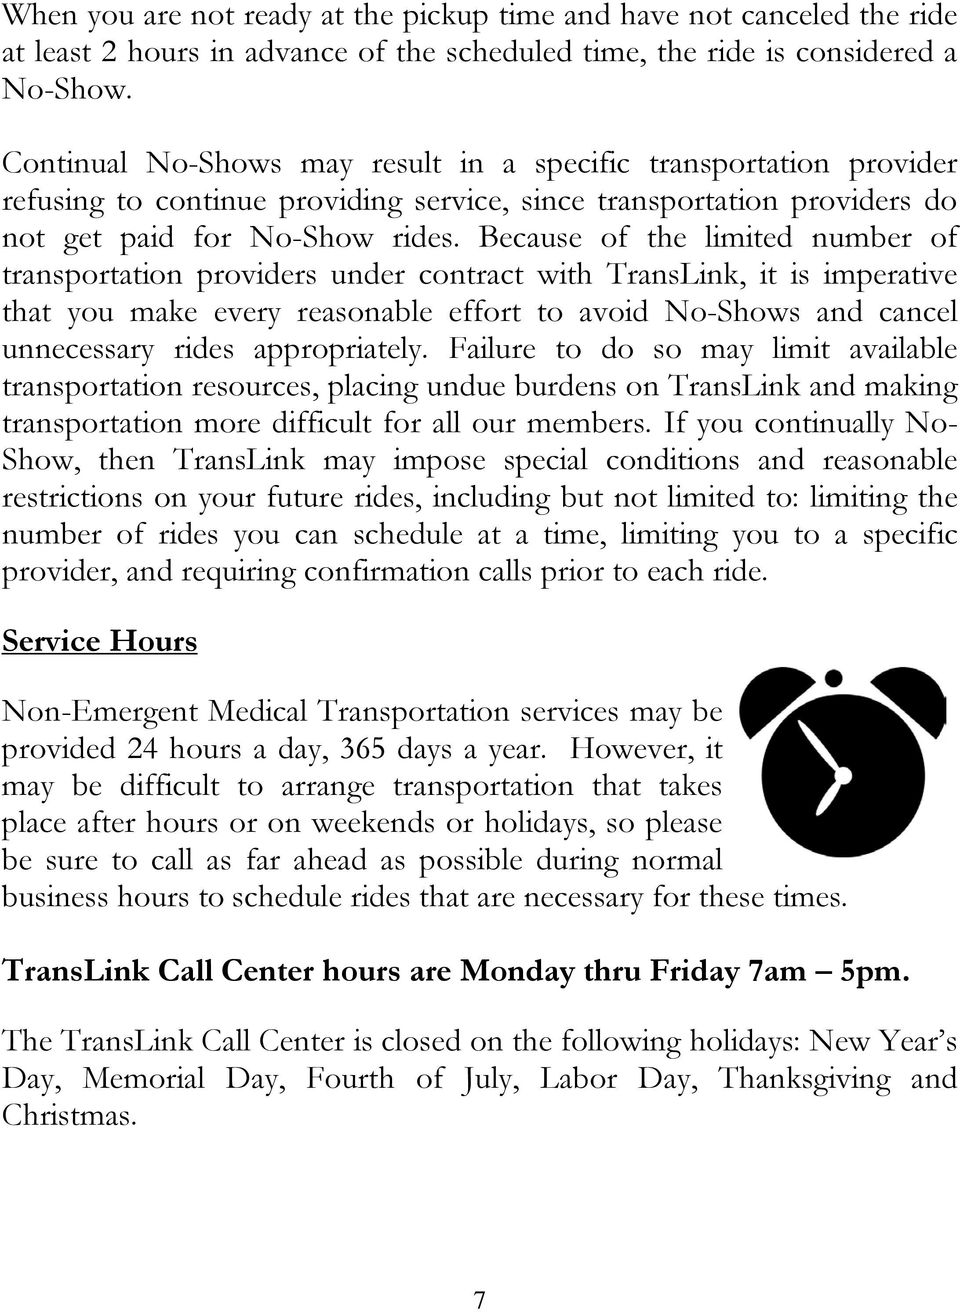 Because of the limited number of transportation providers under contract with TransLink, it is imperative that you make every reasonable effort to avoid No-Shows and cancel unnecessary rides